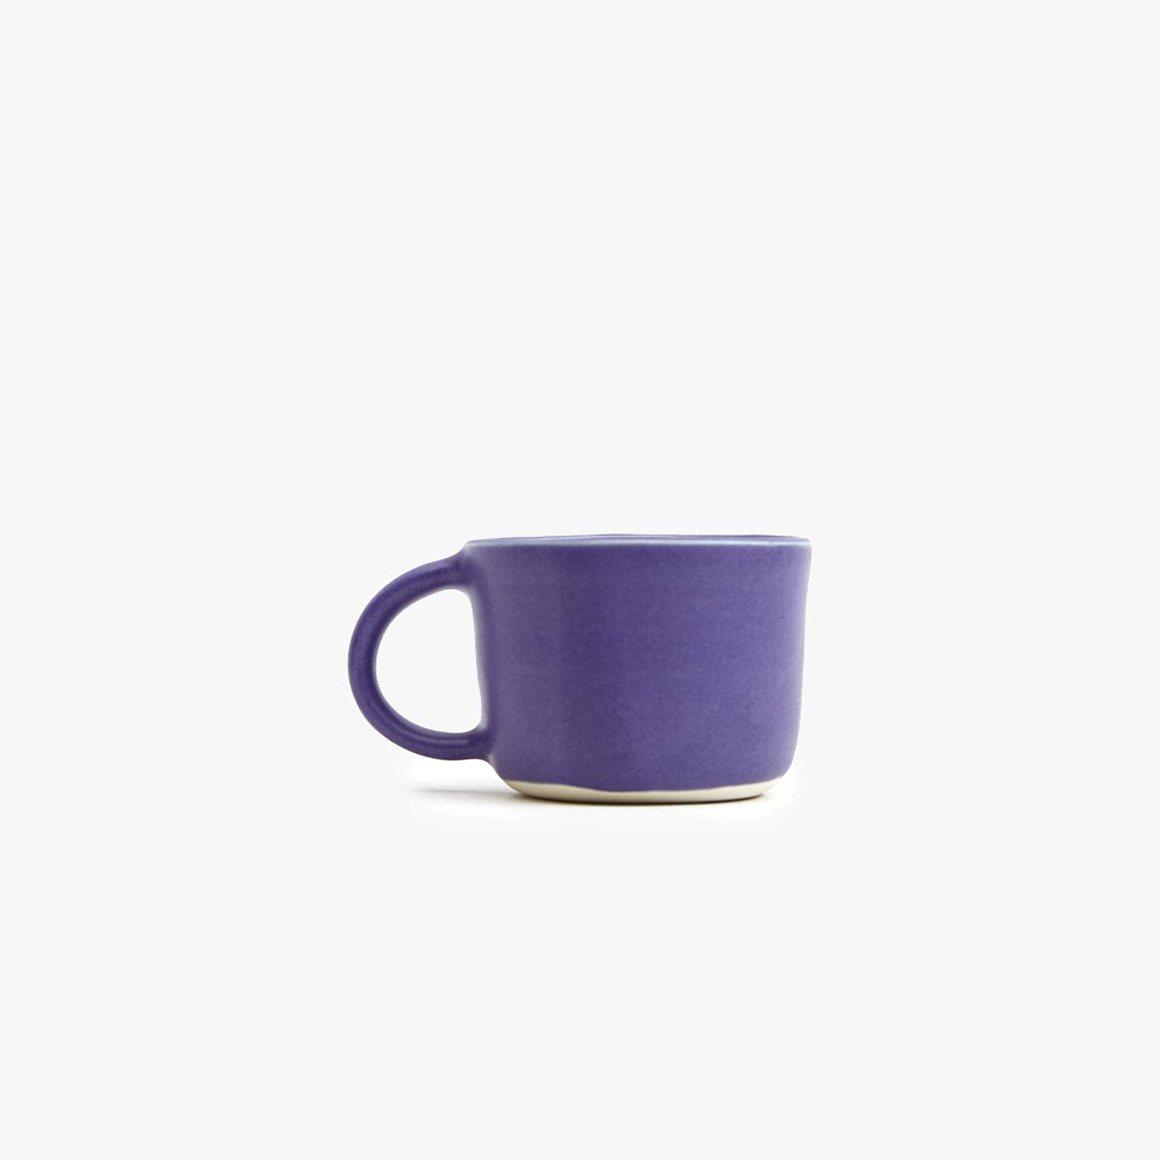 Traditional Mug, purple.